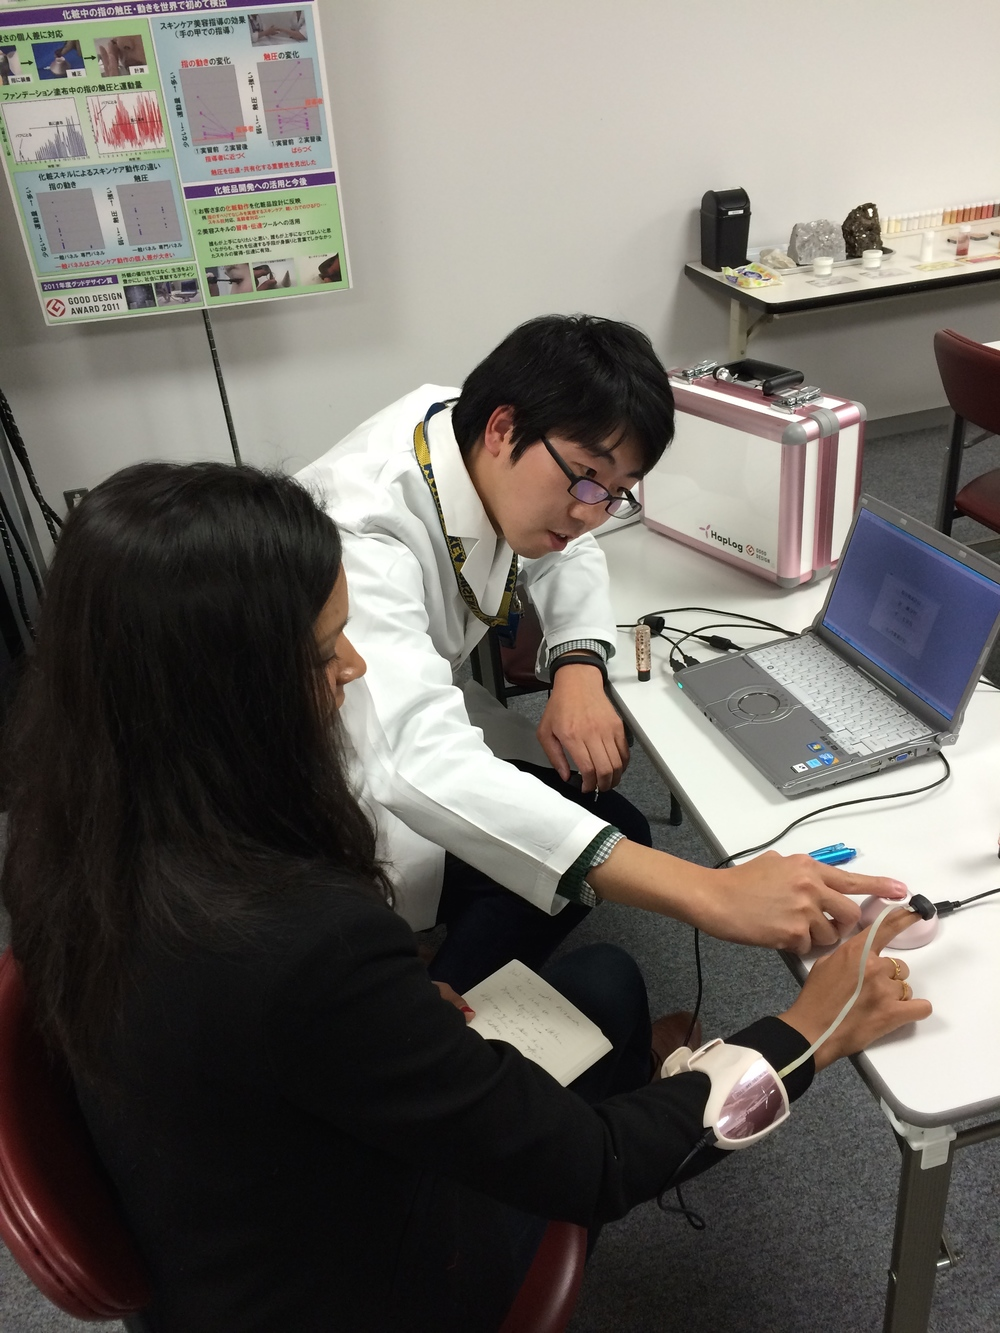 Chatting with Naoki Saito, a research scientist with the Sensory and Emotional Research Group at  Shiseido , about the HapLog, which tests skin deformation during product application to give scientists a measure of how users sense its texture